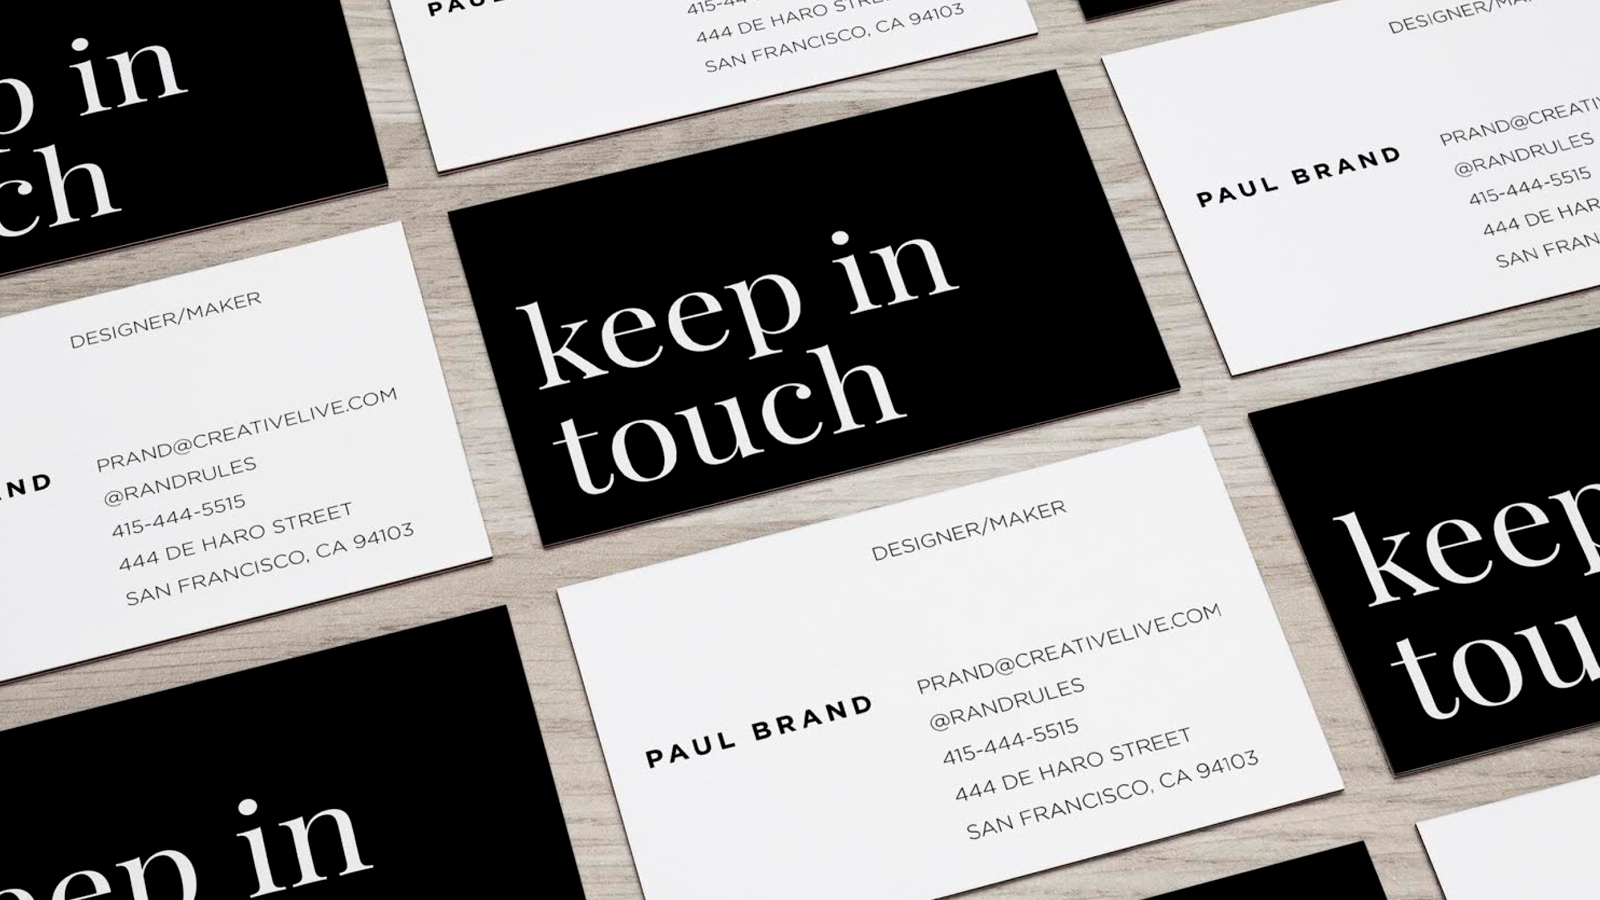 Smart Ways Of Using Business Cards in Networking - Business Card Tips